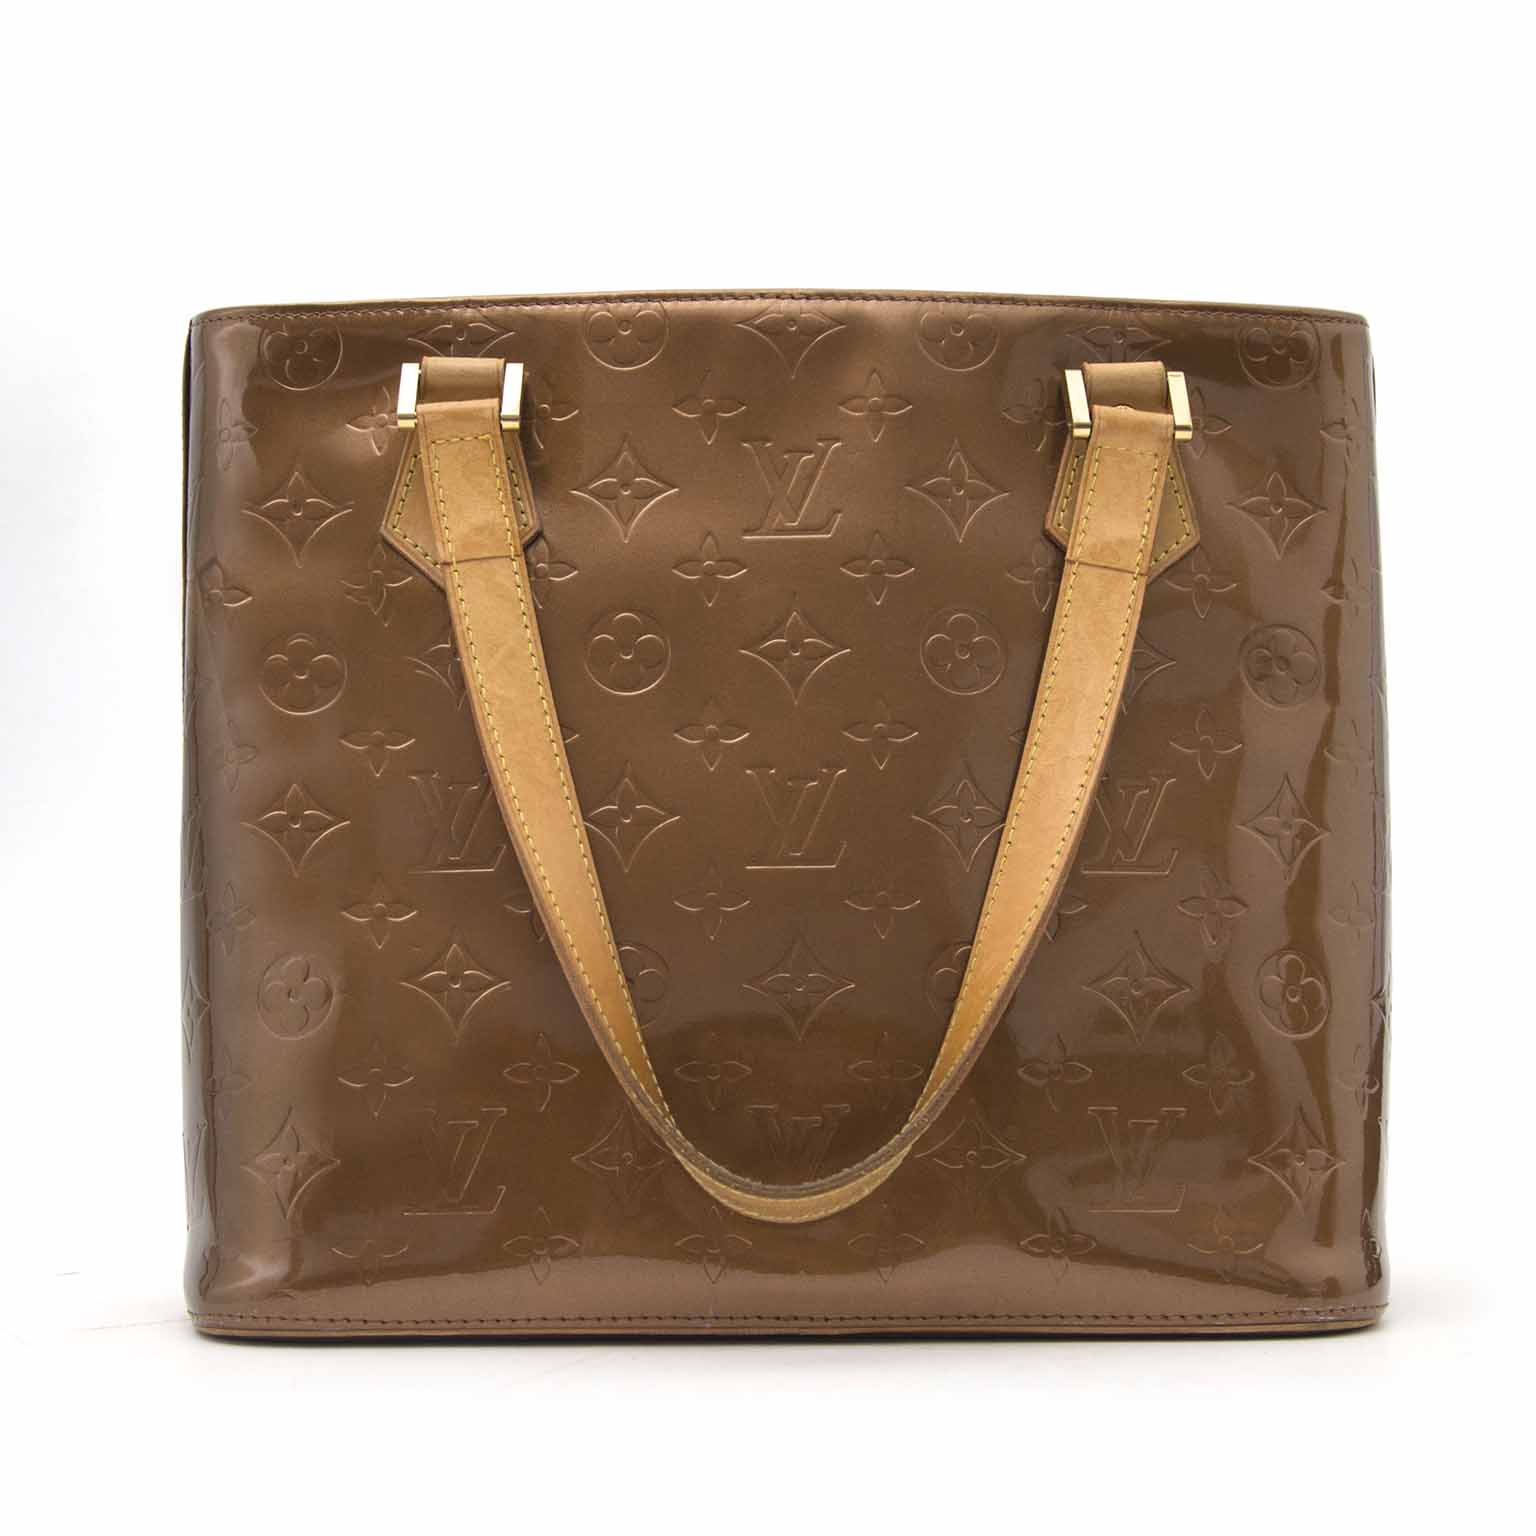 Koop deze authentieke Louis Vuitton Houston Vernis Brons kleurige designer tas Labellov